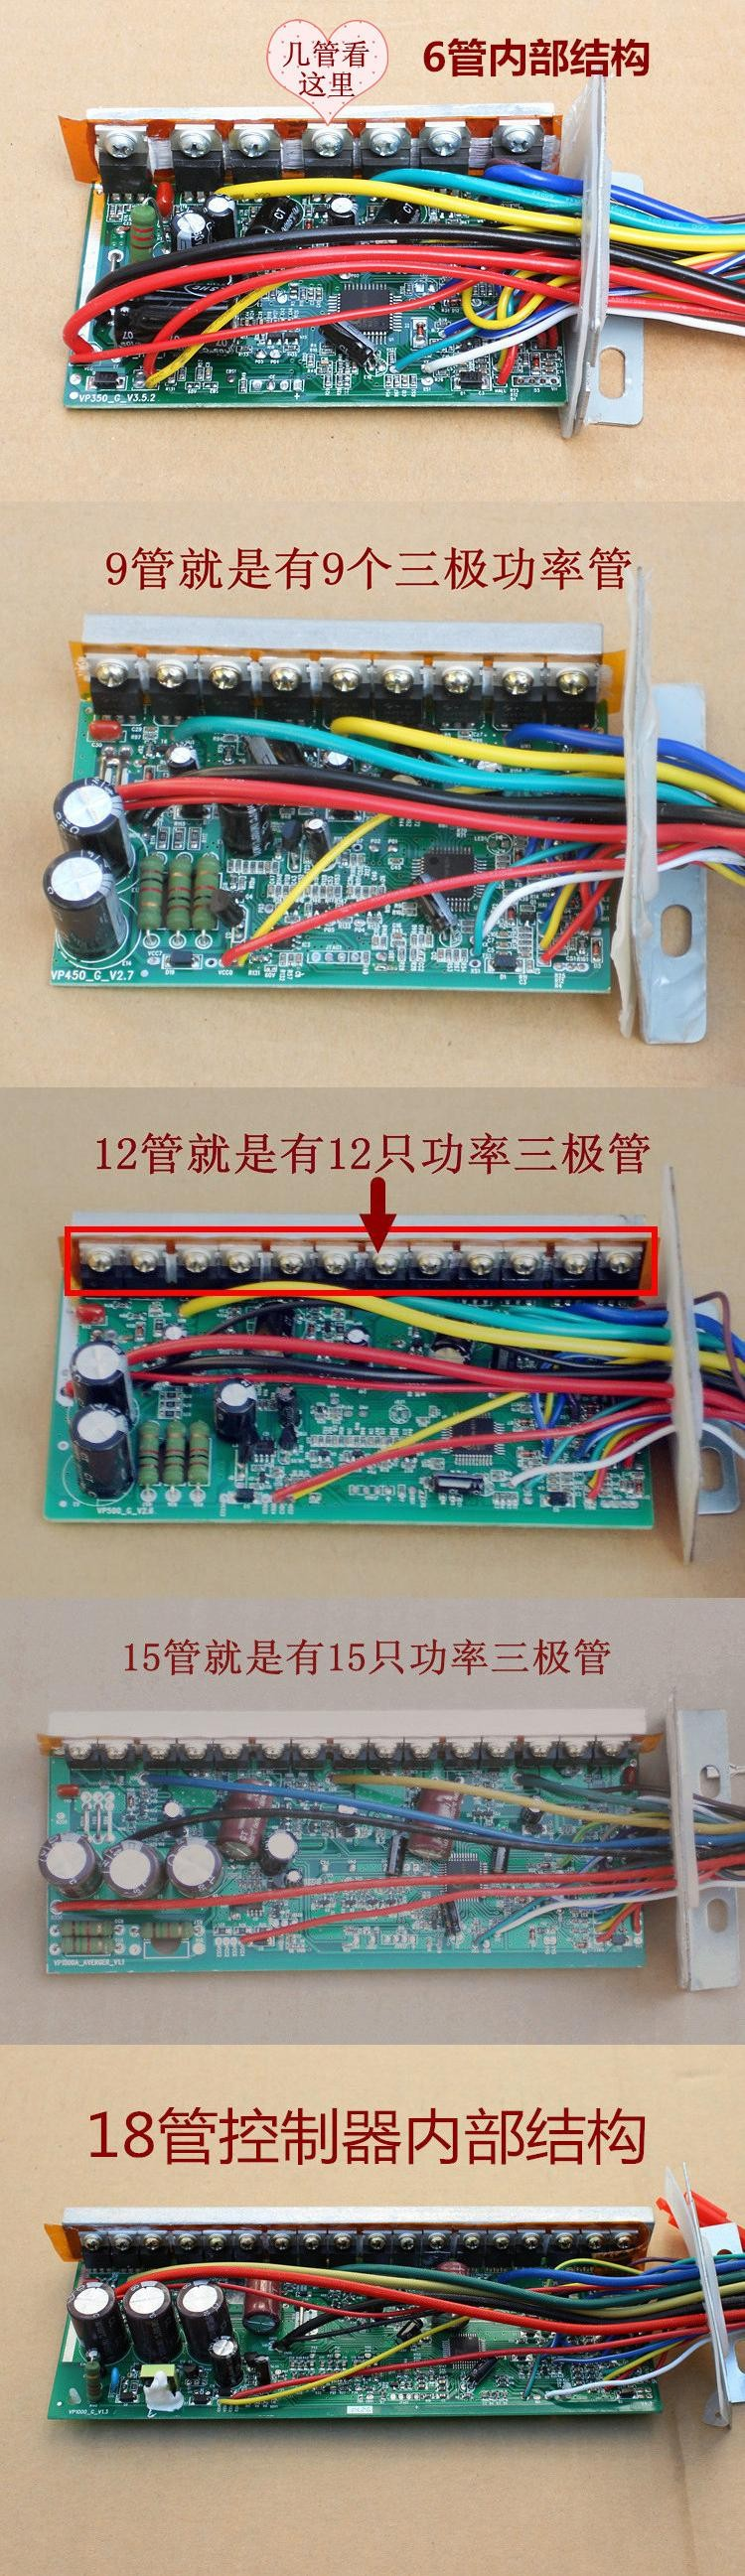 Free Shipping Simple 350w 36v 48v Dc 6 Mofset Brushless Wiring Diagram Bldc Tb6560 3a Stepper Motor Driver Board Stepping Drive Single Axis Controller 10 Gearusd 3960 Lot